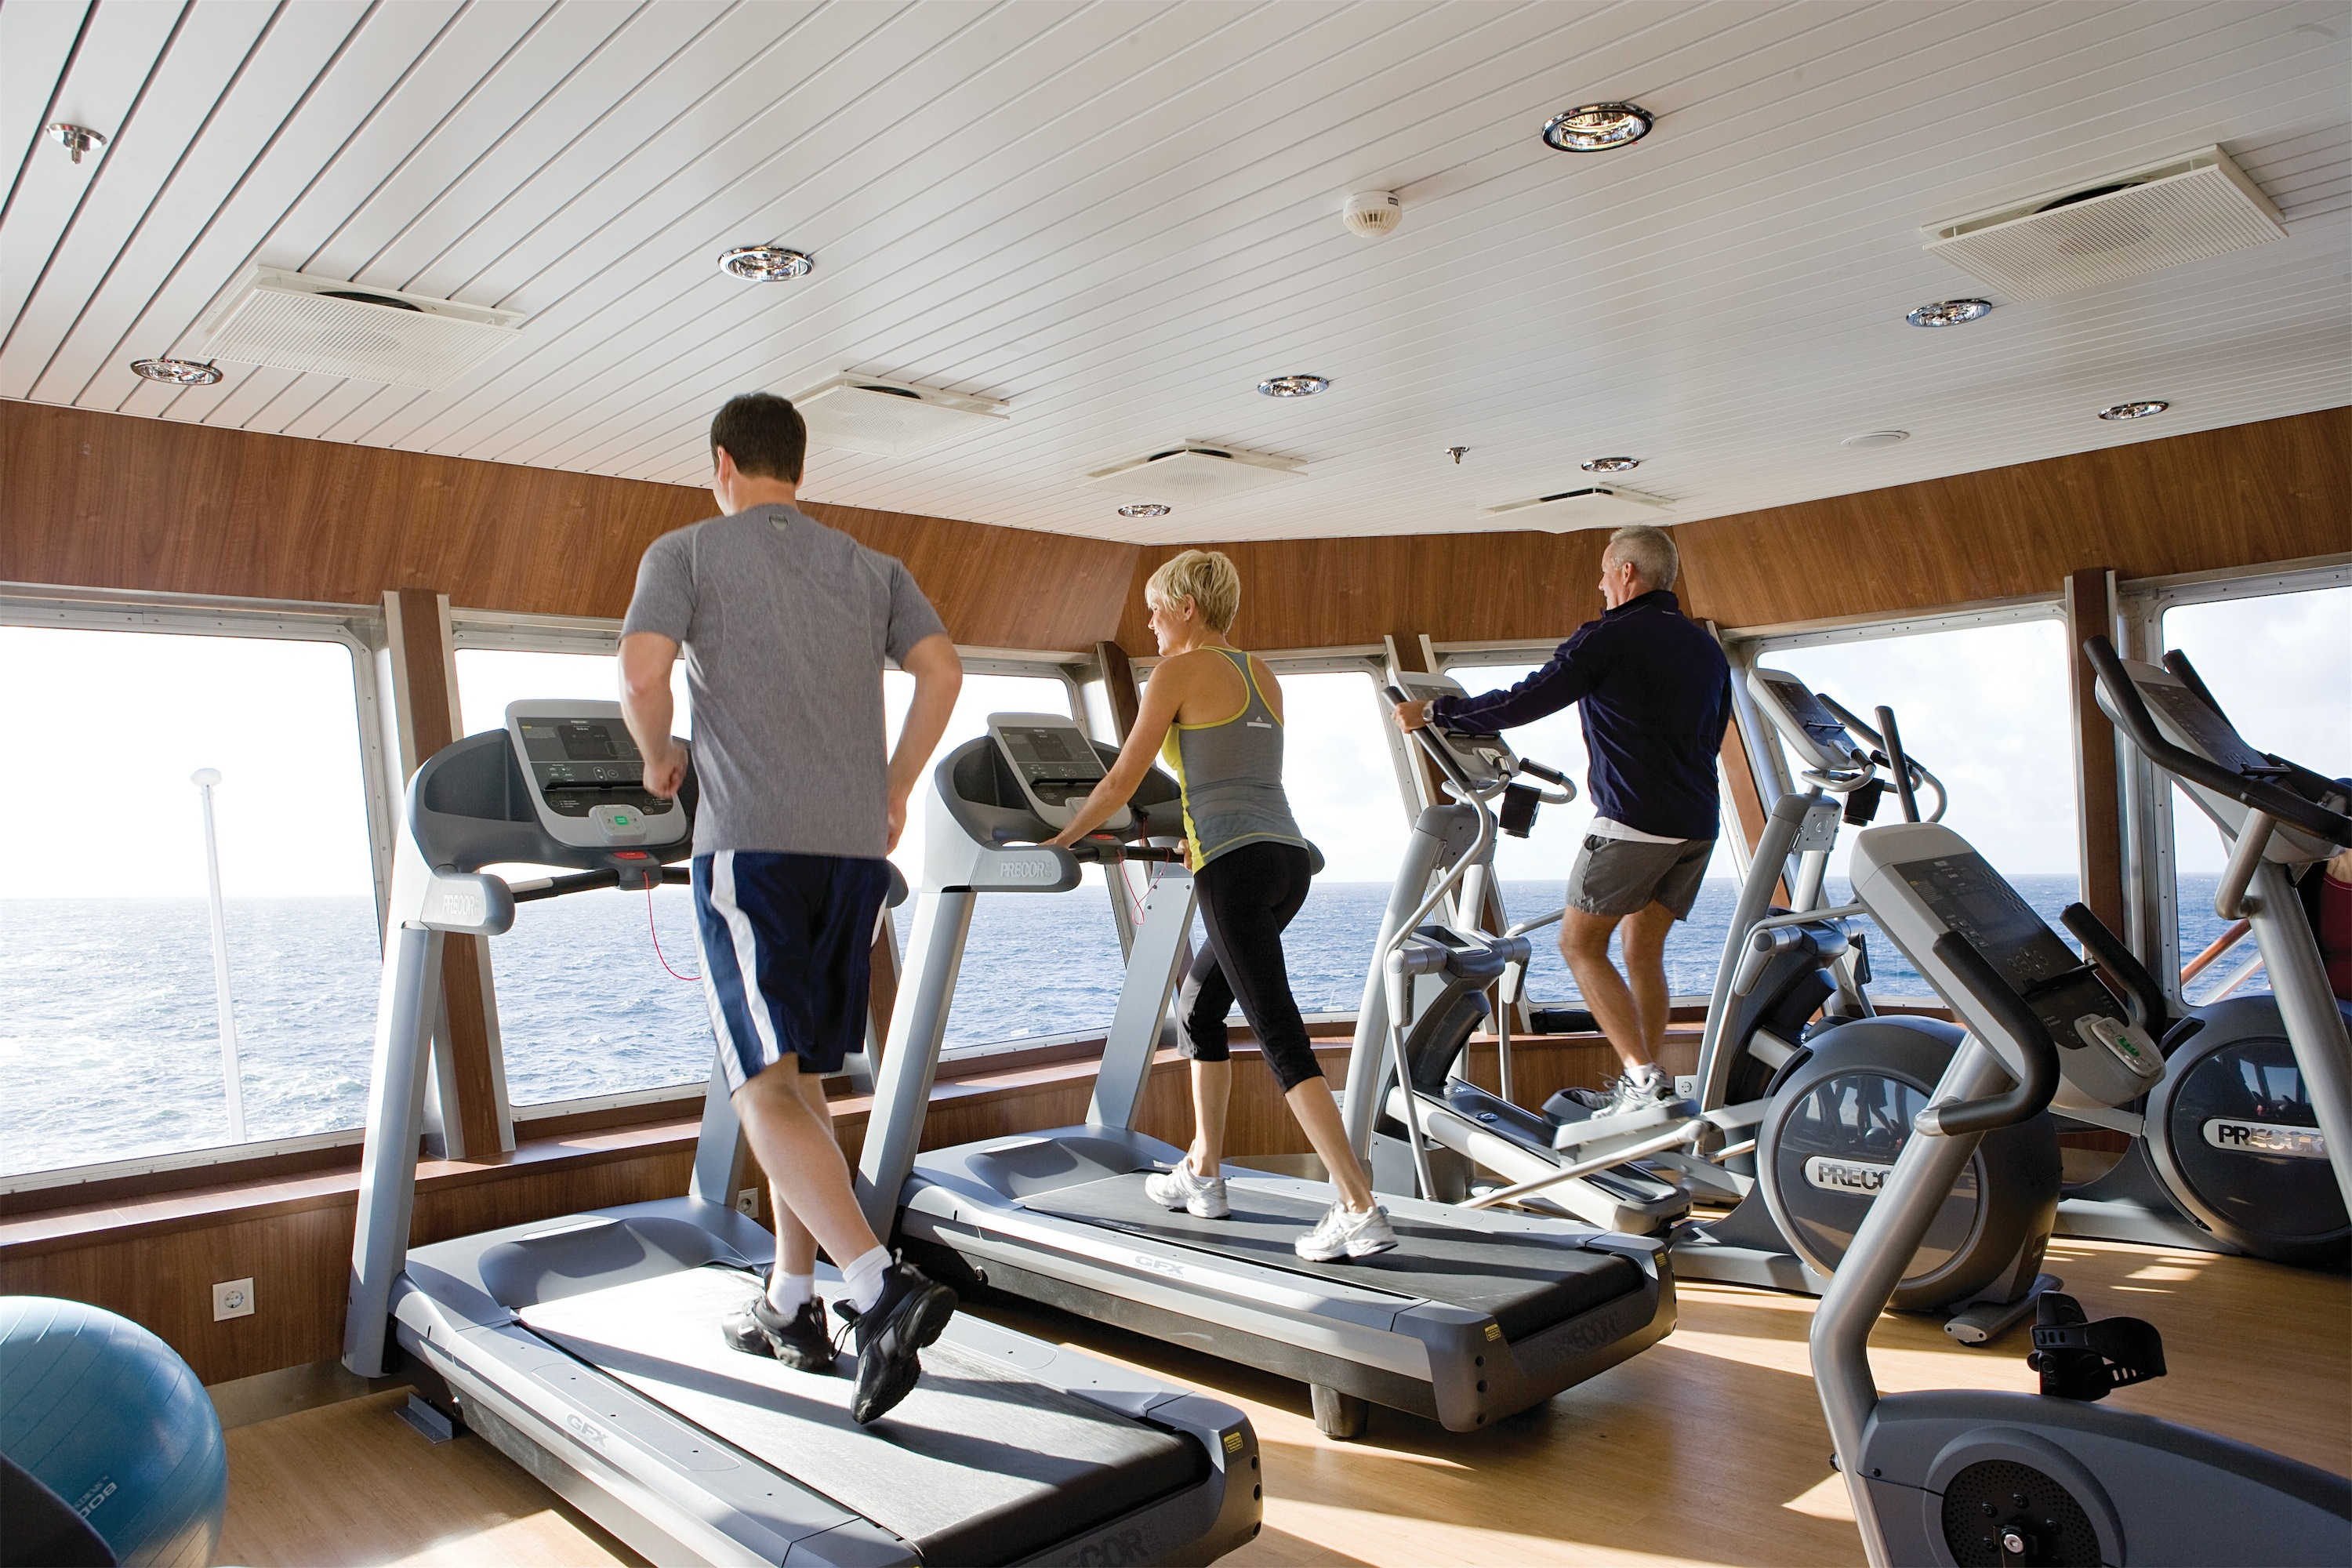 Lindblad Expeditions National Geographic Explorer Interior Fitness Centre.jpg